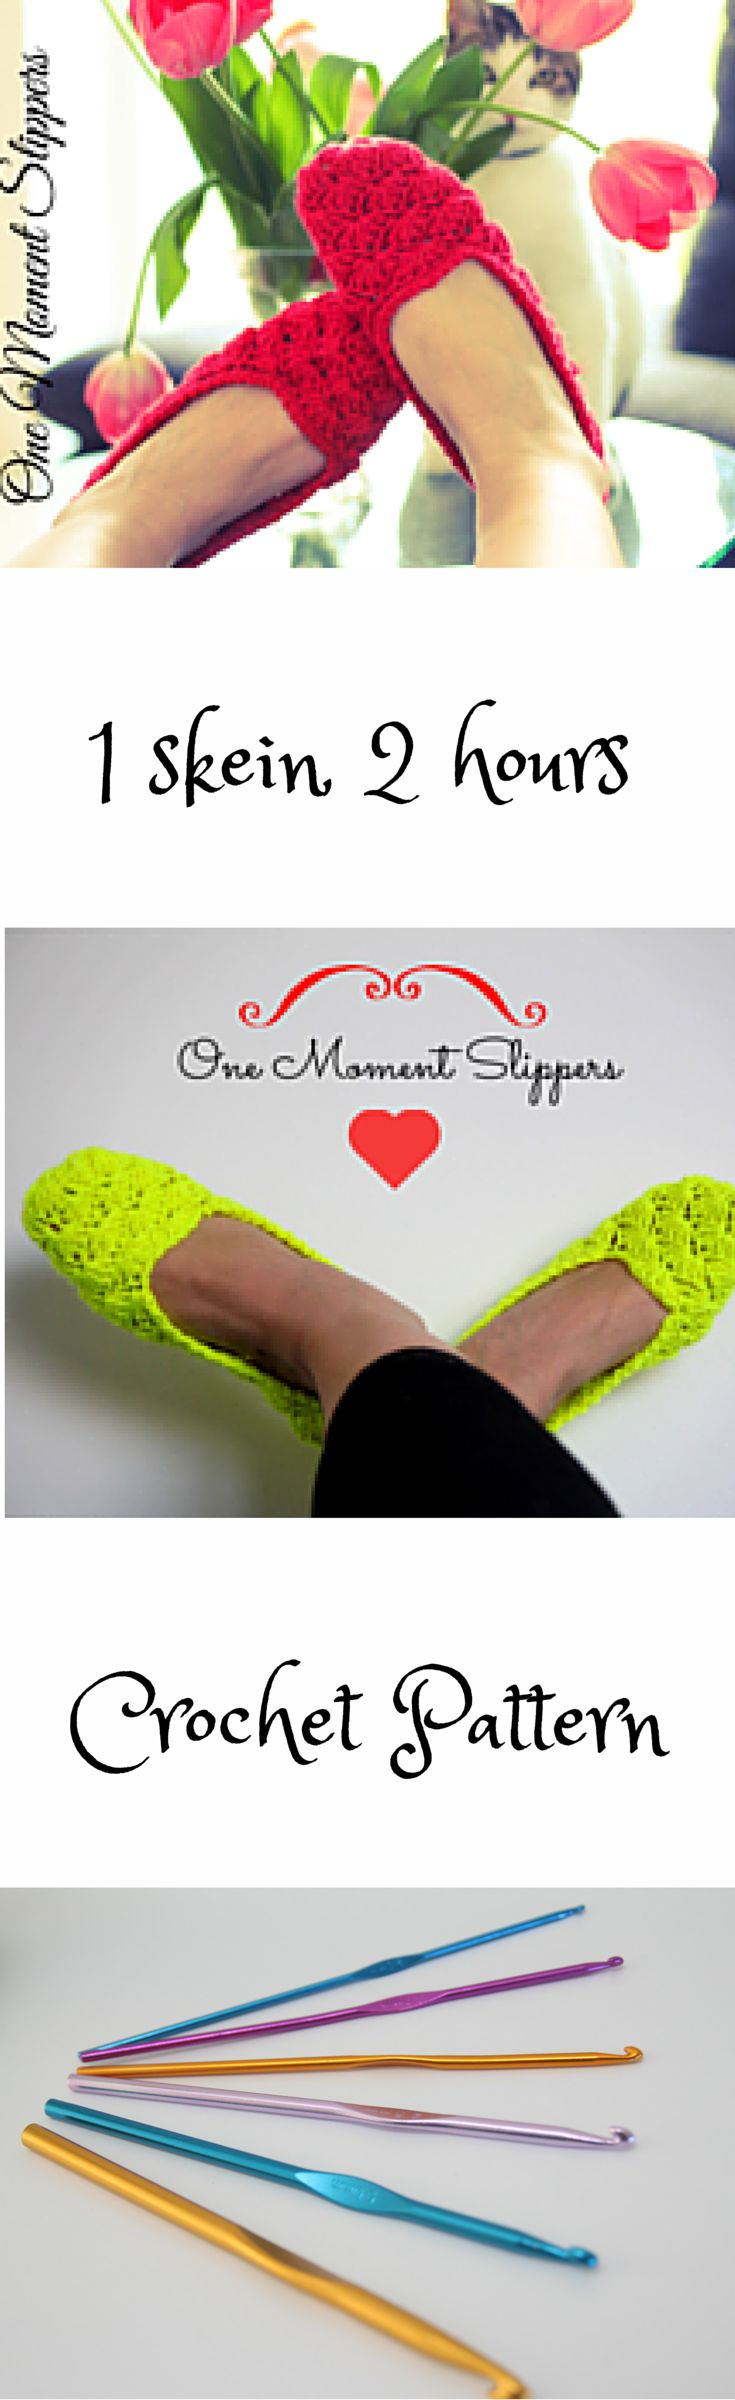 Nice and comfy MJ slippers. Size 4-12. Step by step description. Fun and easy to make up of 1 skein (100 g) of Aran weight yarn.   http://www.ravelry.com/patterns/library/one-moment-slippers